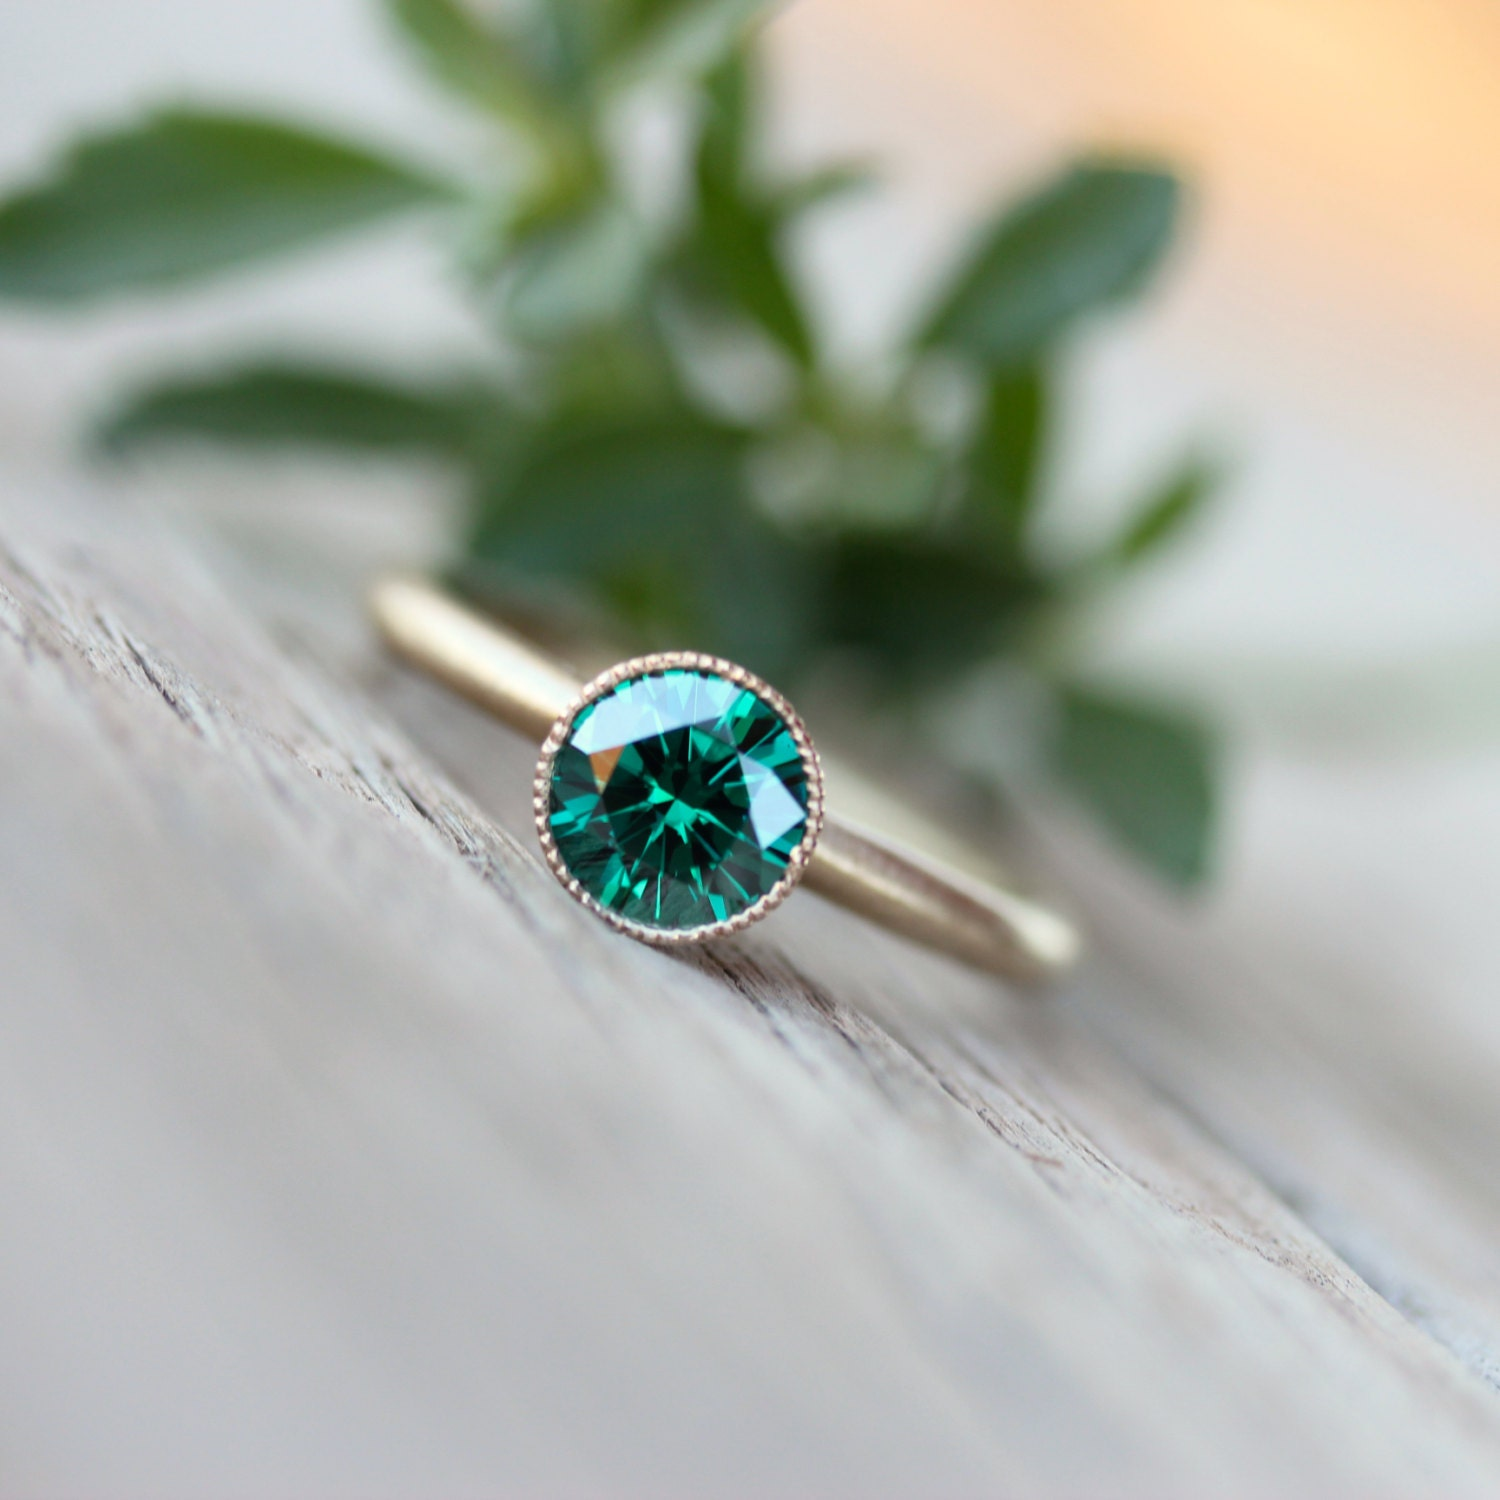 beautiful emerald engagement rings etsy. Black Bedroom Furniture Sets. Home Design Ideas